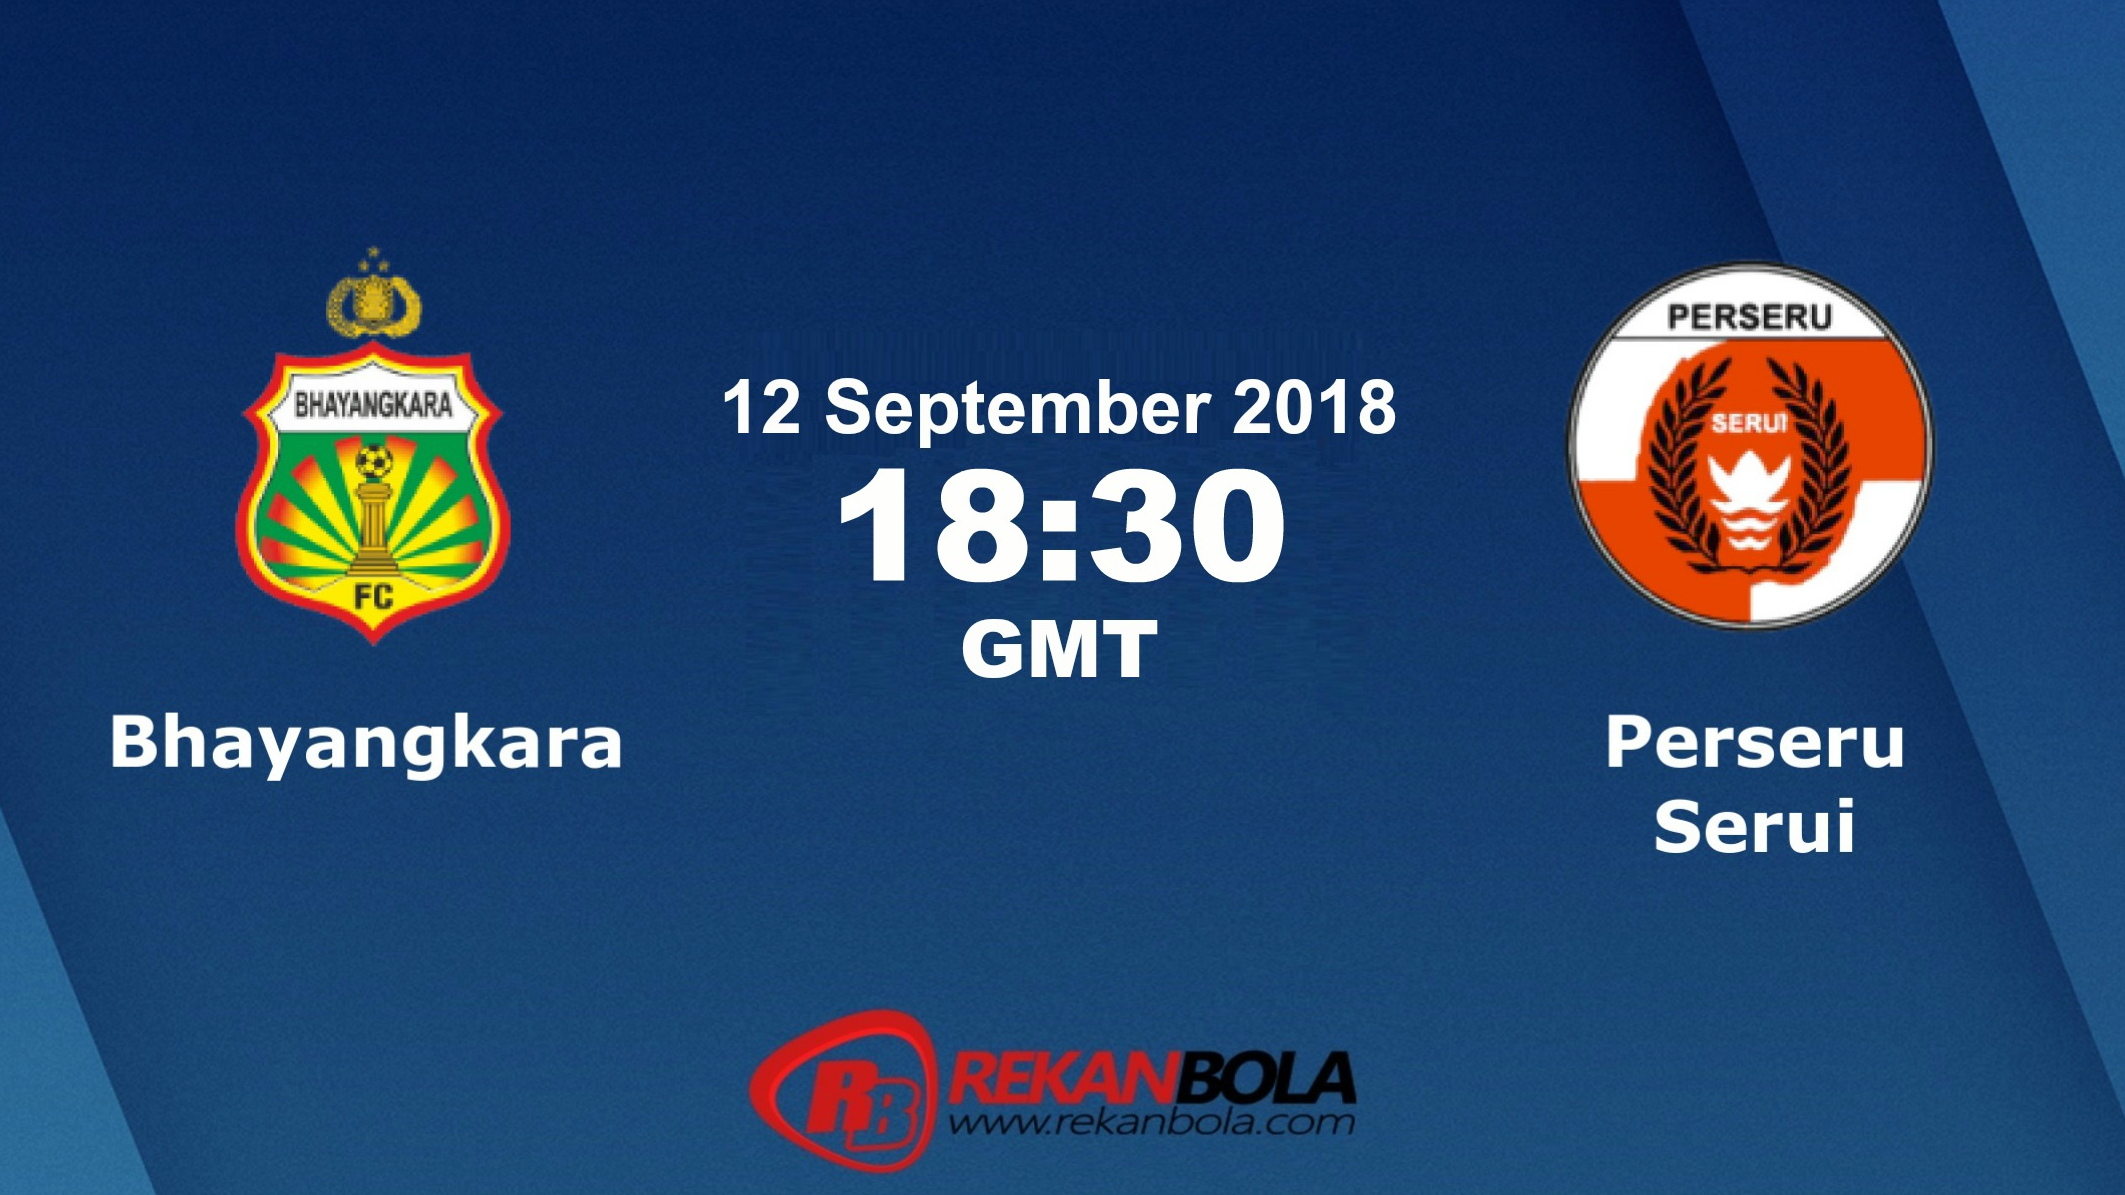 Nonton Siaran Live Streaming Bhayangkara Vs Perseru 12 September 2018